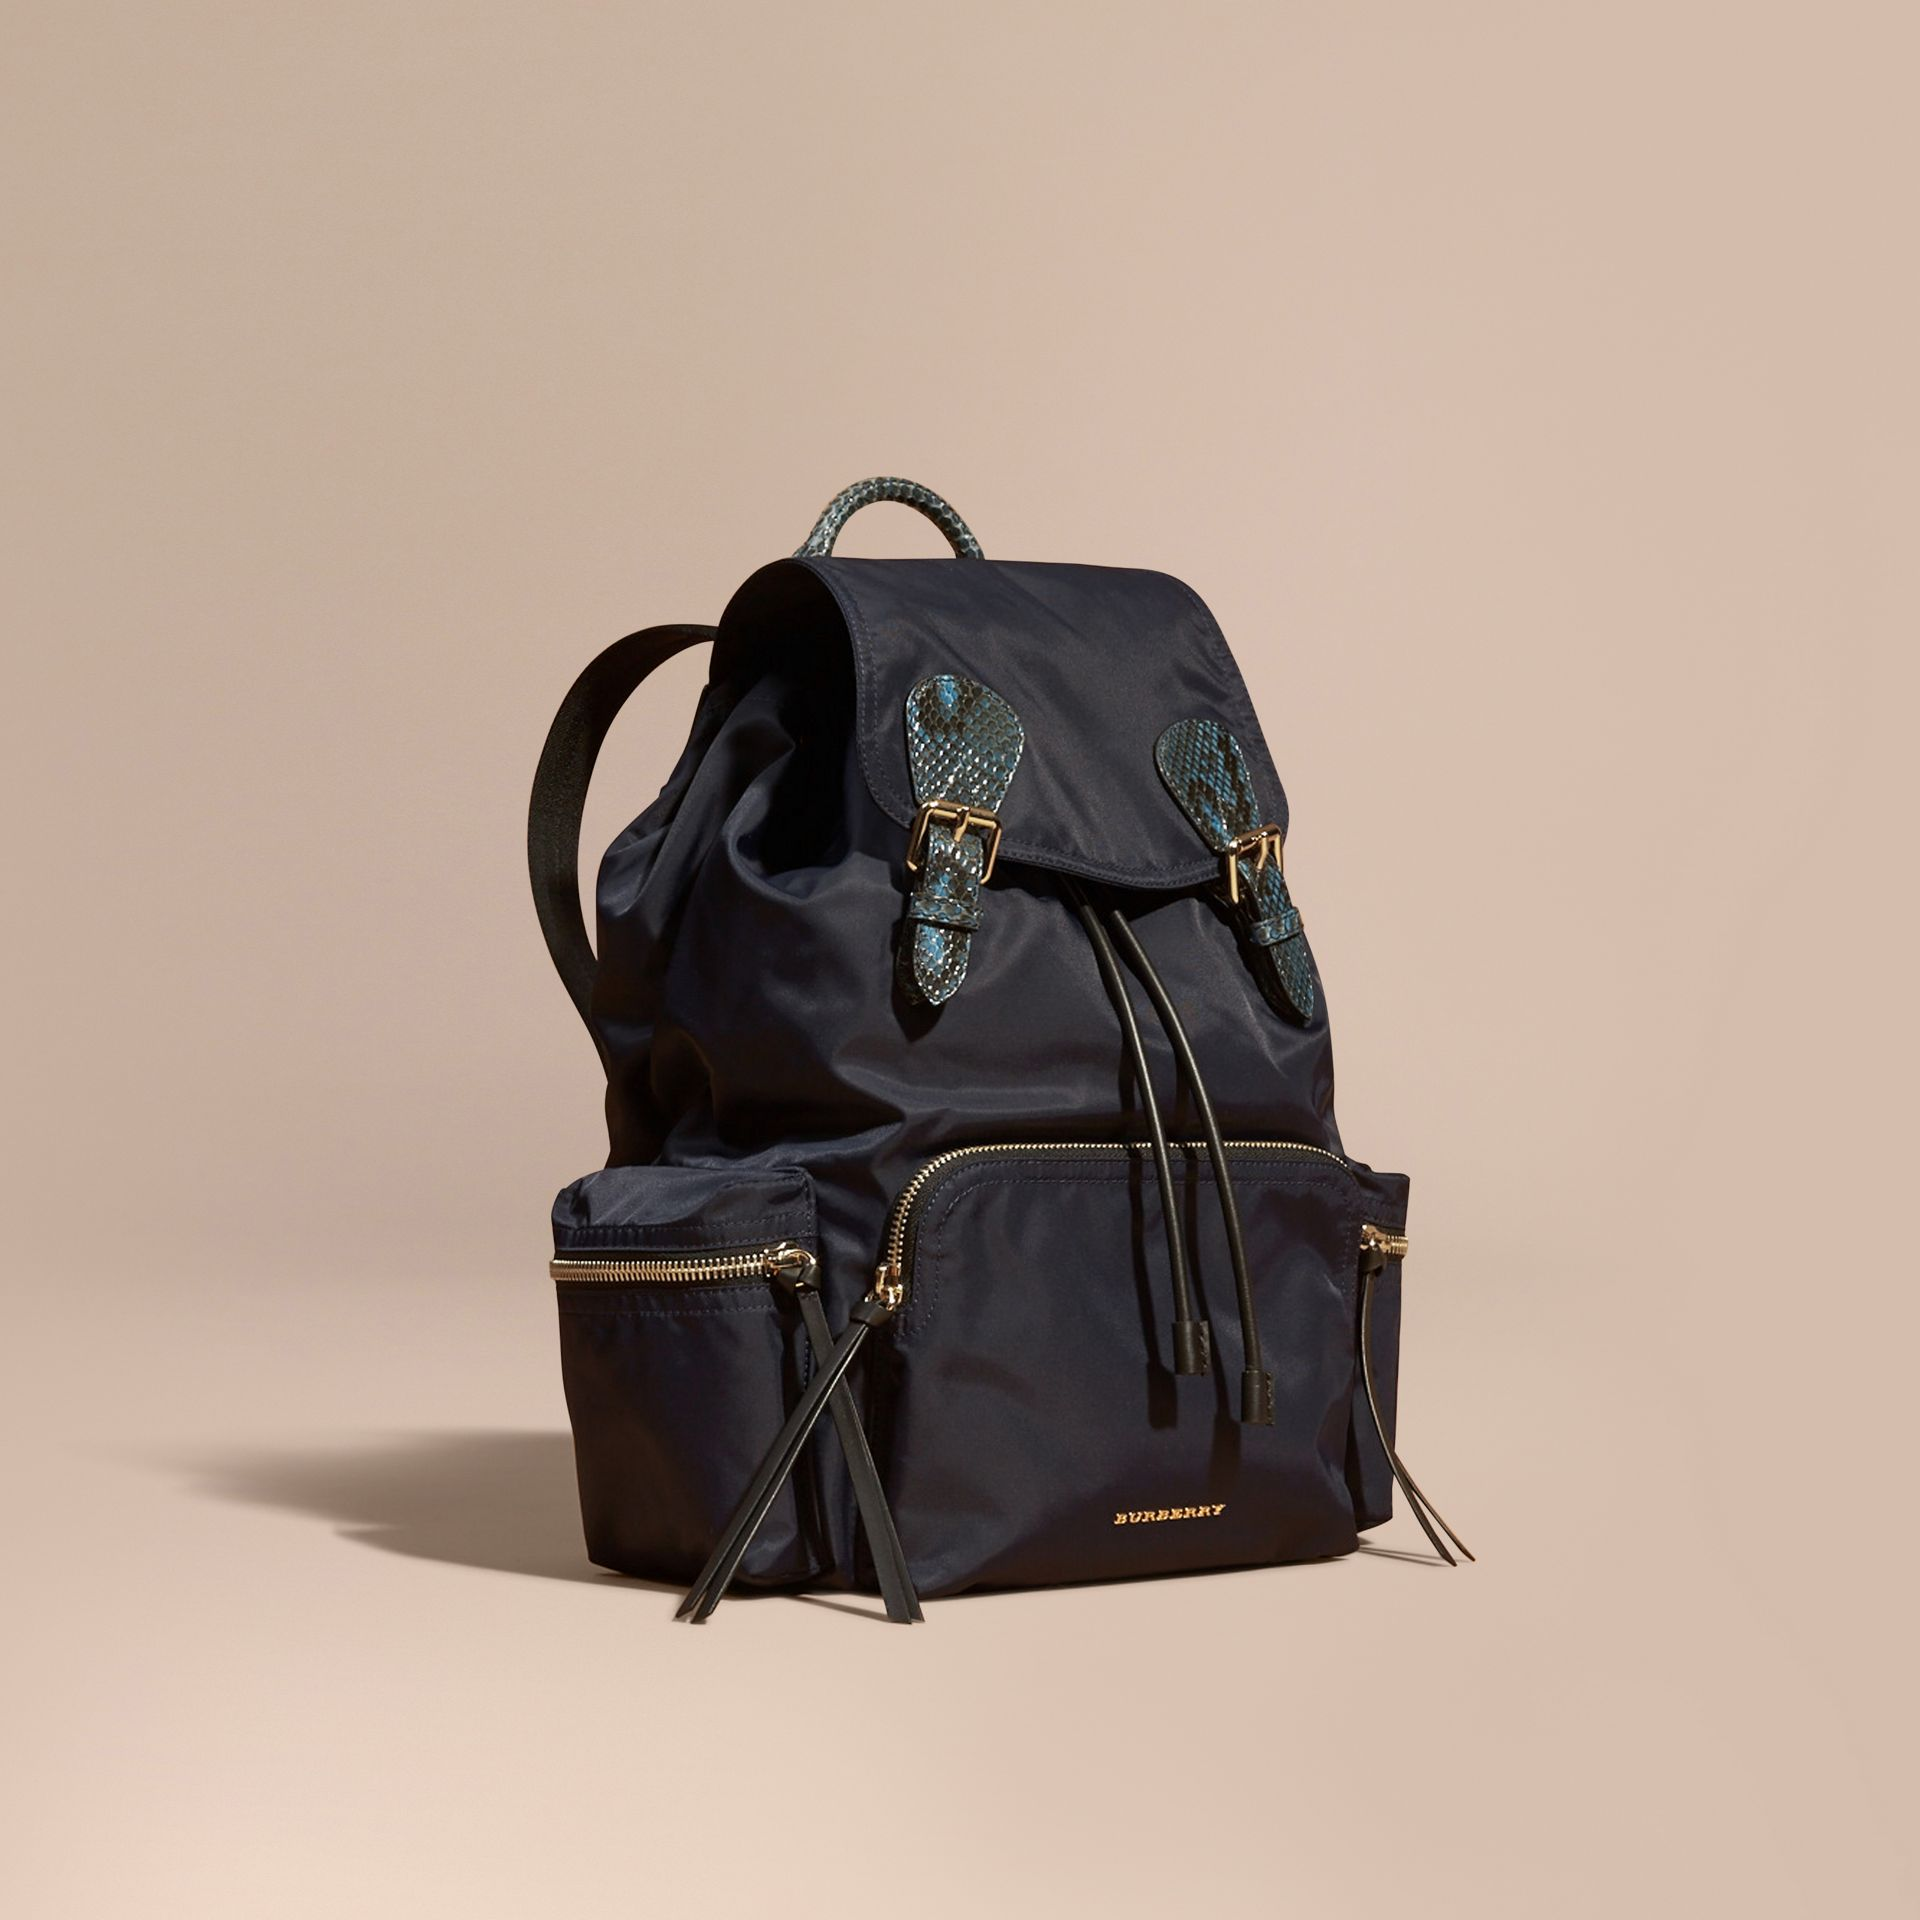 Ink blue/mineral blue The Large Rucksack in Technical Nylon and Snakeskin Ink Blue/mineral Blue - gallery image 1